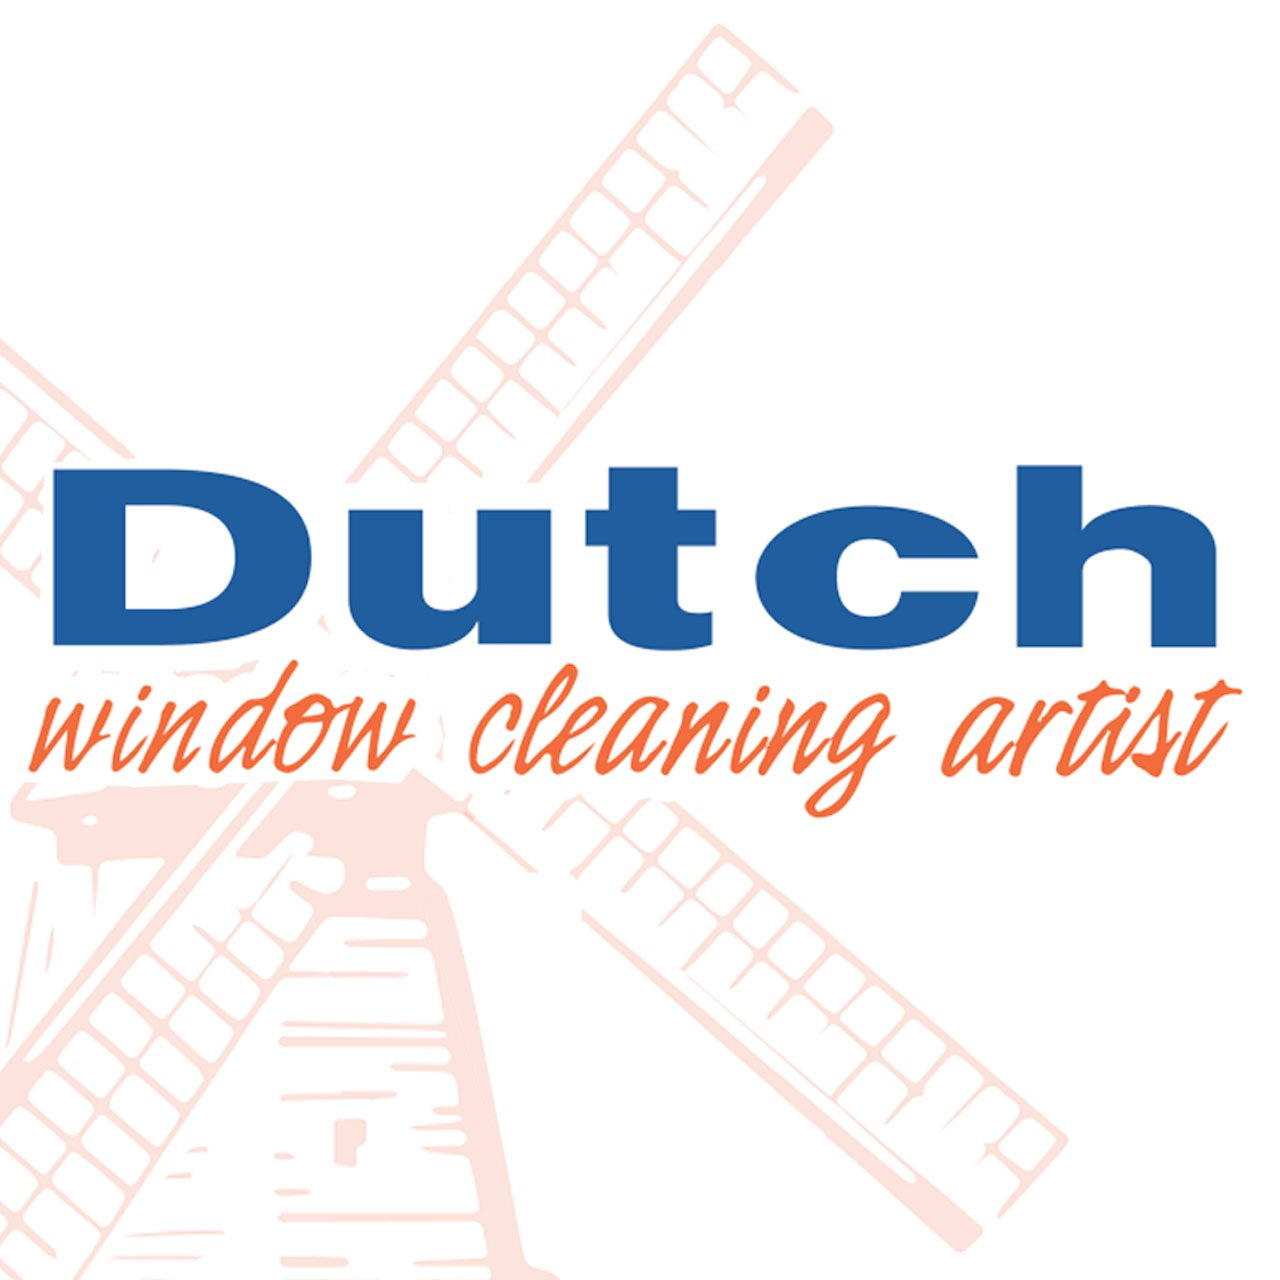 Dutch Window Cleaning Artist - Serving San Luis Obispo County